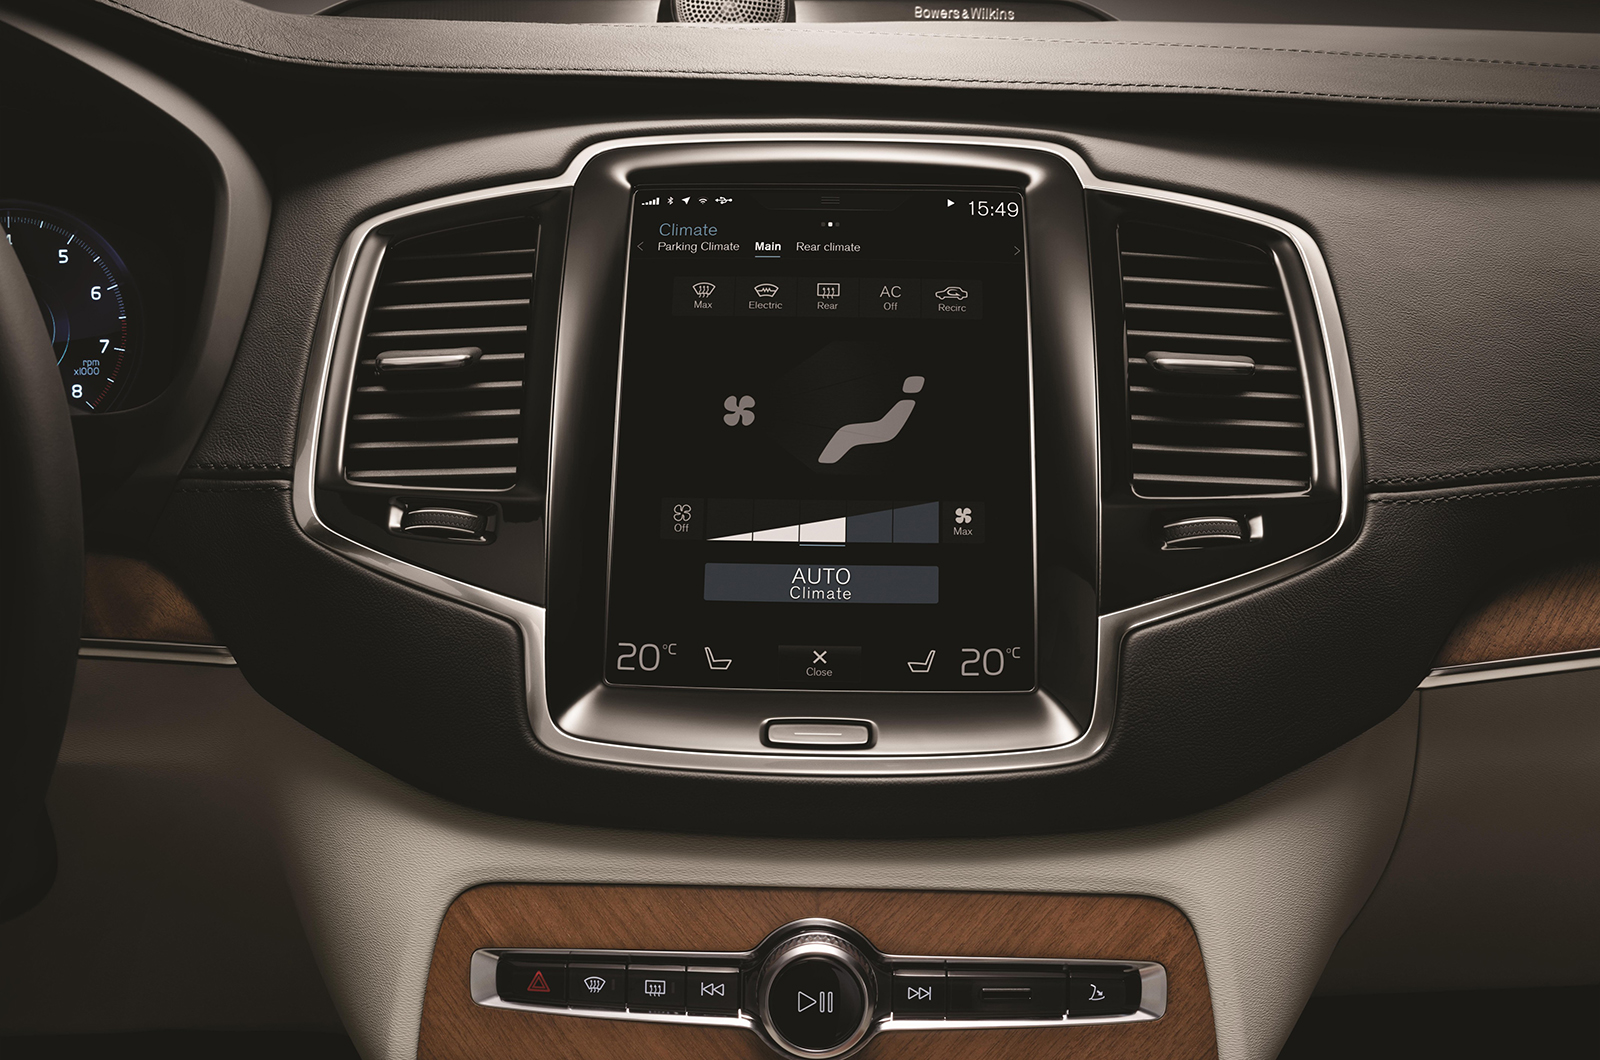 Volvo XC90 big infotainment display with touchscreen functionality